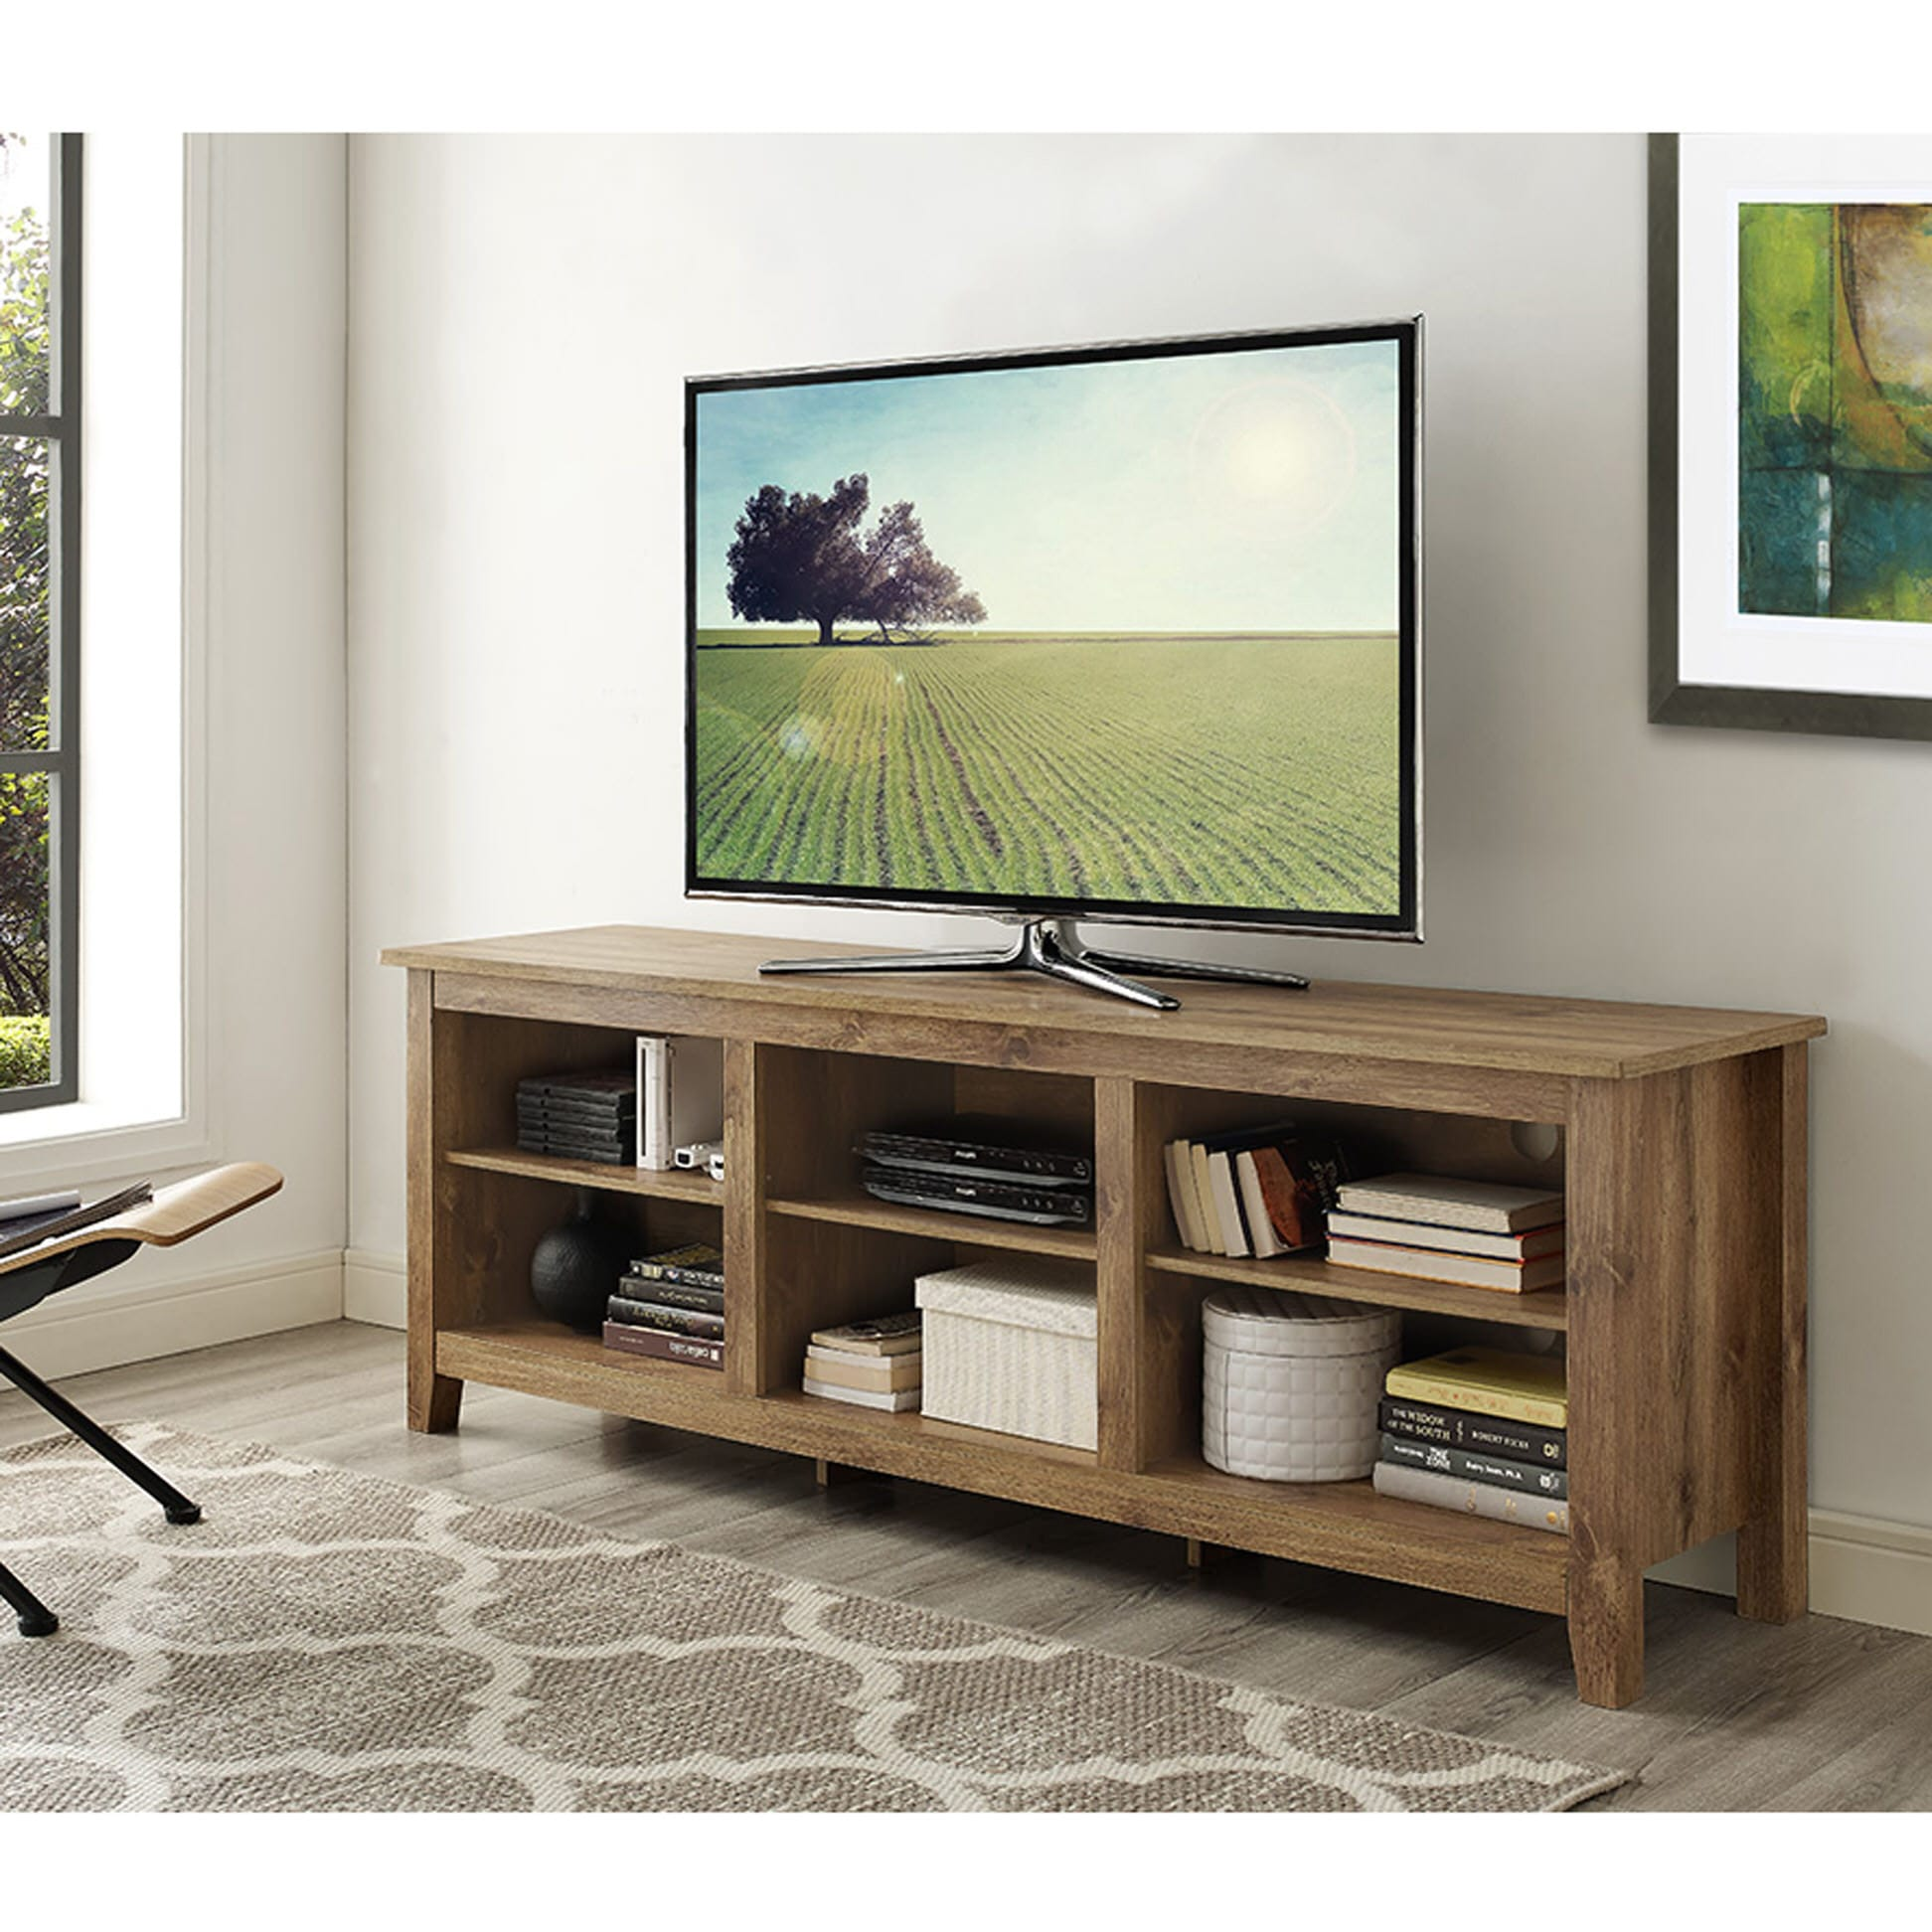 Magnificent 70 Inch Tv Stand Barnwood By Walker Edison Caraccident5 Cool Chair Designs And Ideas Caraccident5Info